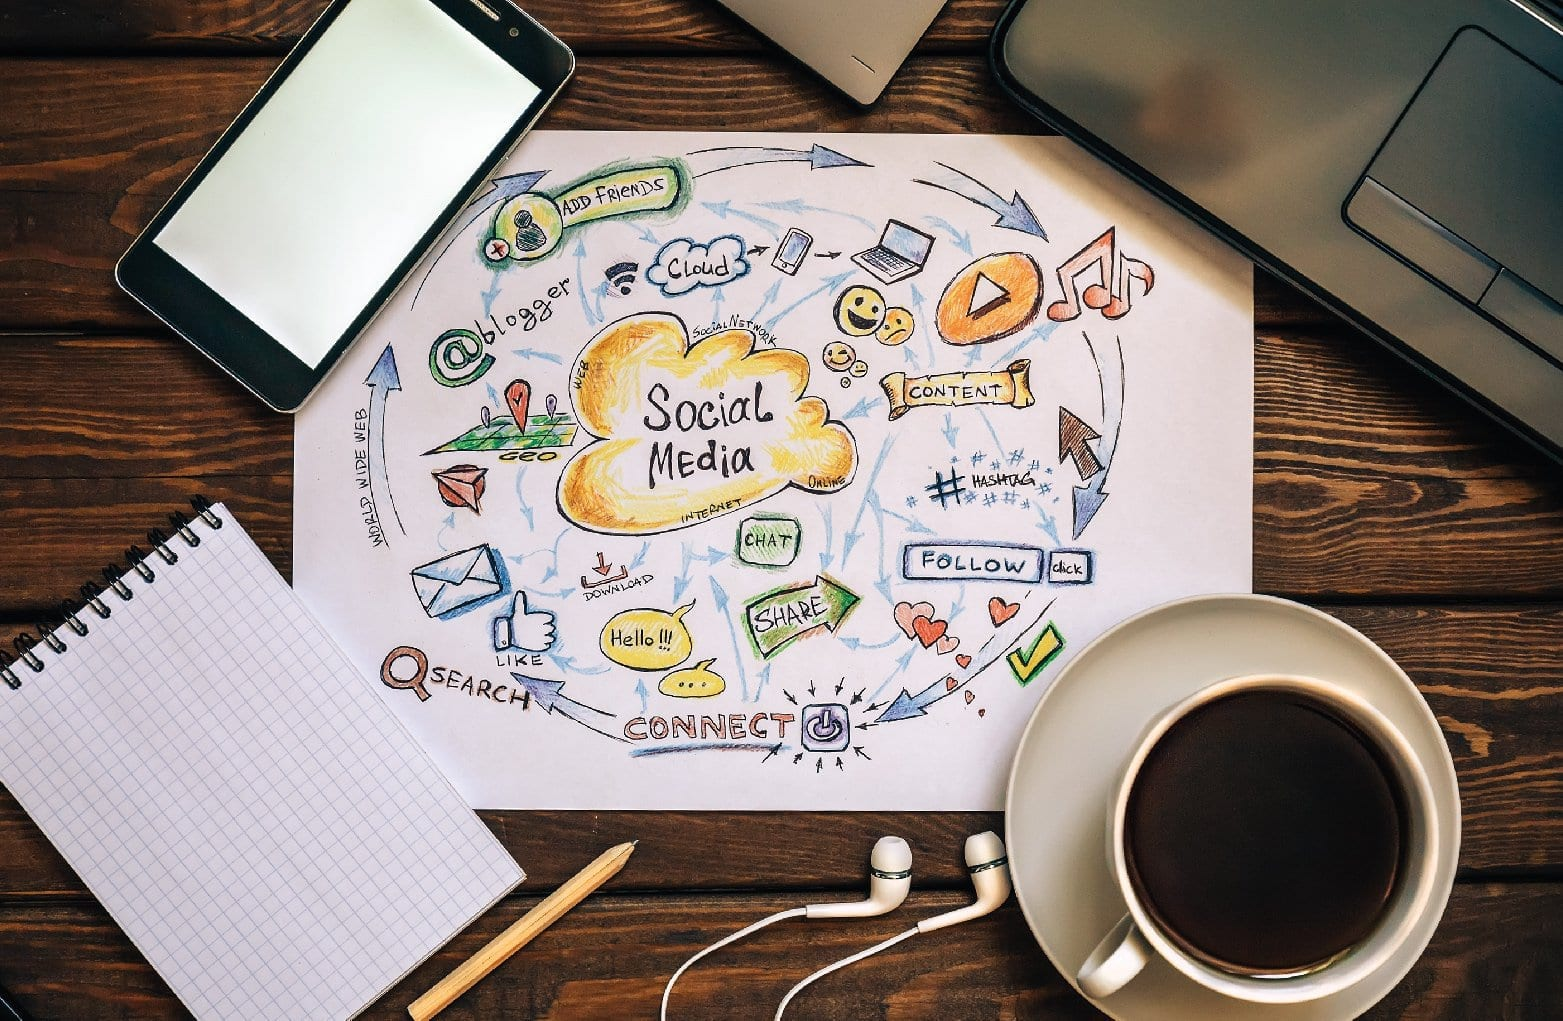 How to take advantage of social media marketing developed by a brand or company